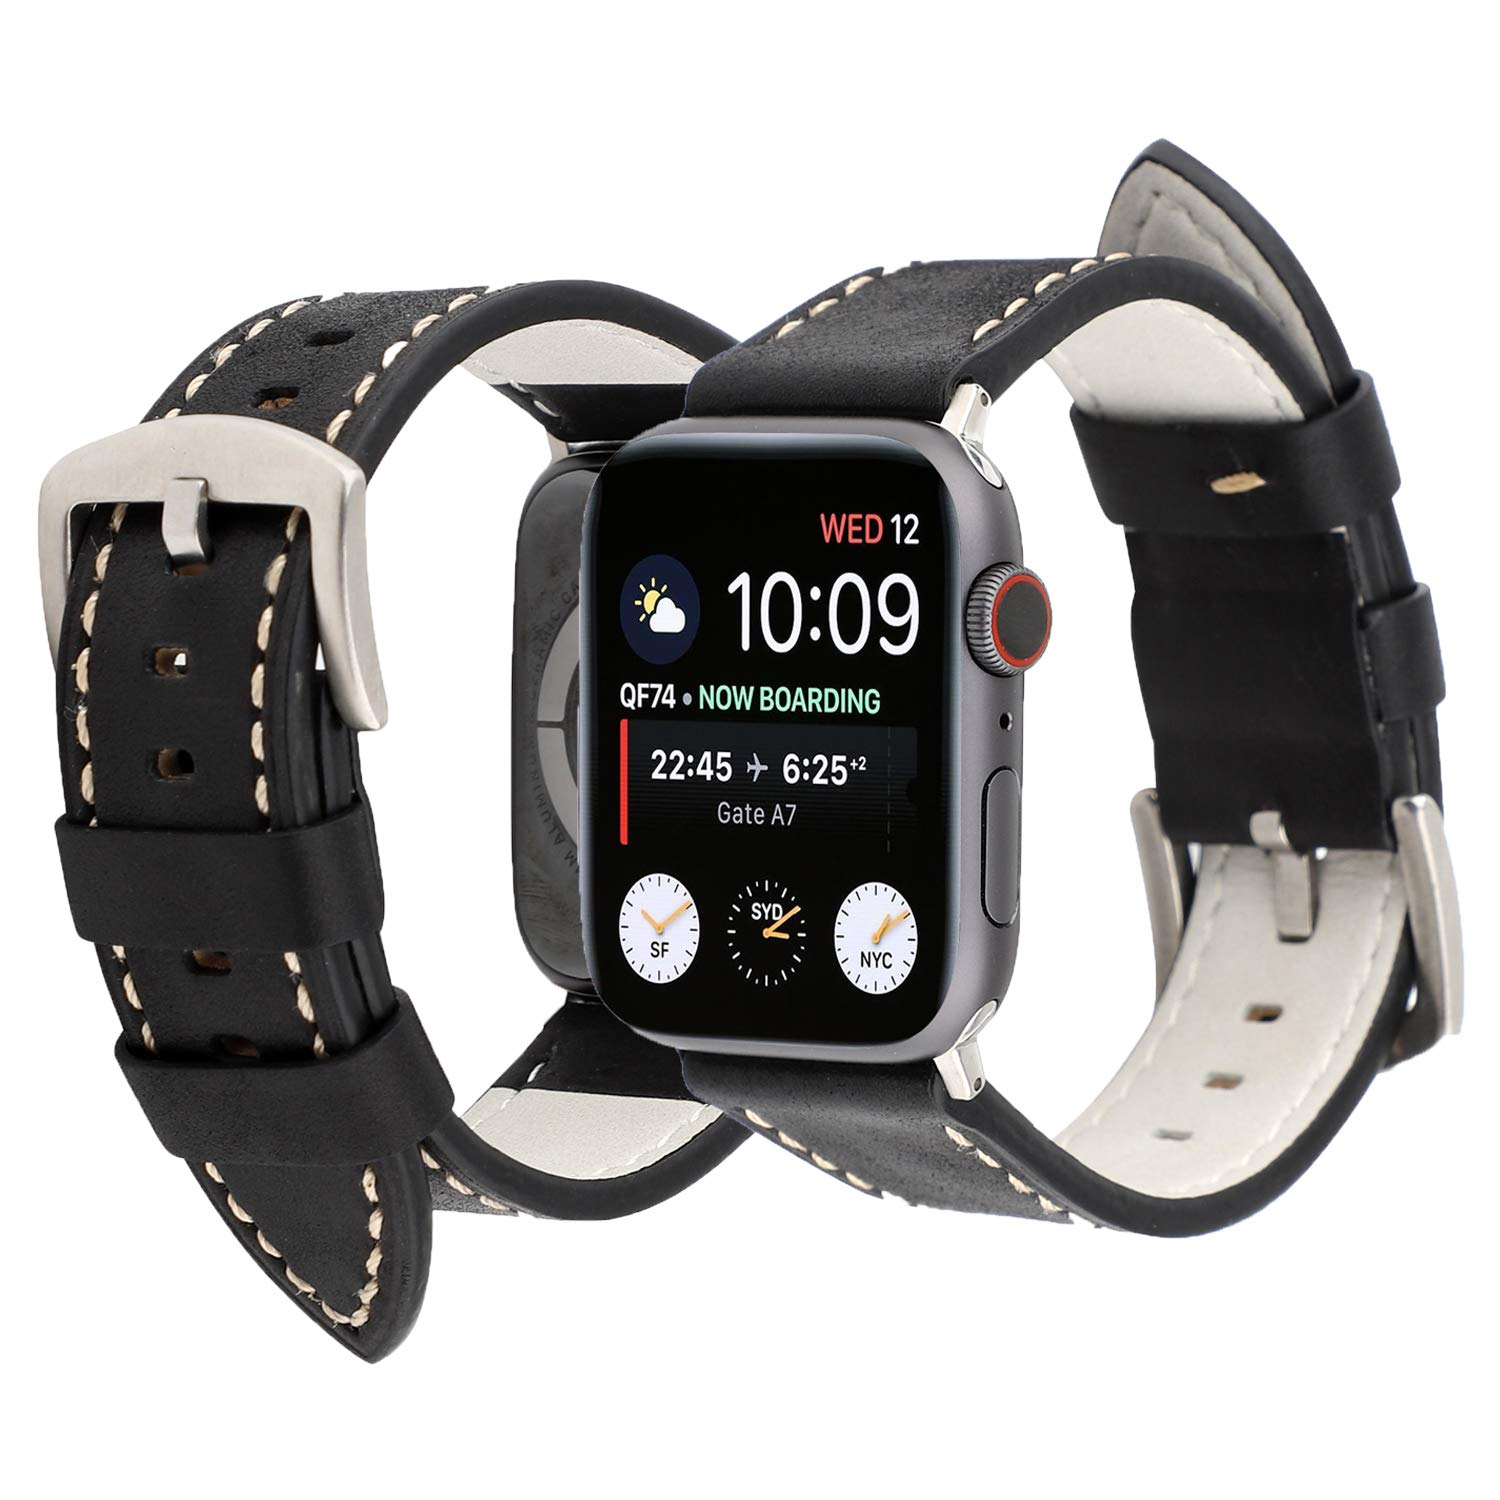 7a80d8dfbb86a PENKEY Leather Sports Band Compatible Apple Watch Band 38mm 40mm 42mm 44mm  Vintage Dressy Genuine Denim Leather Strap for iWatch Replacement Series 4,  ...